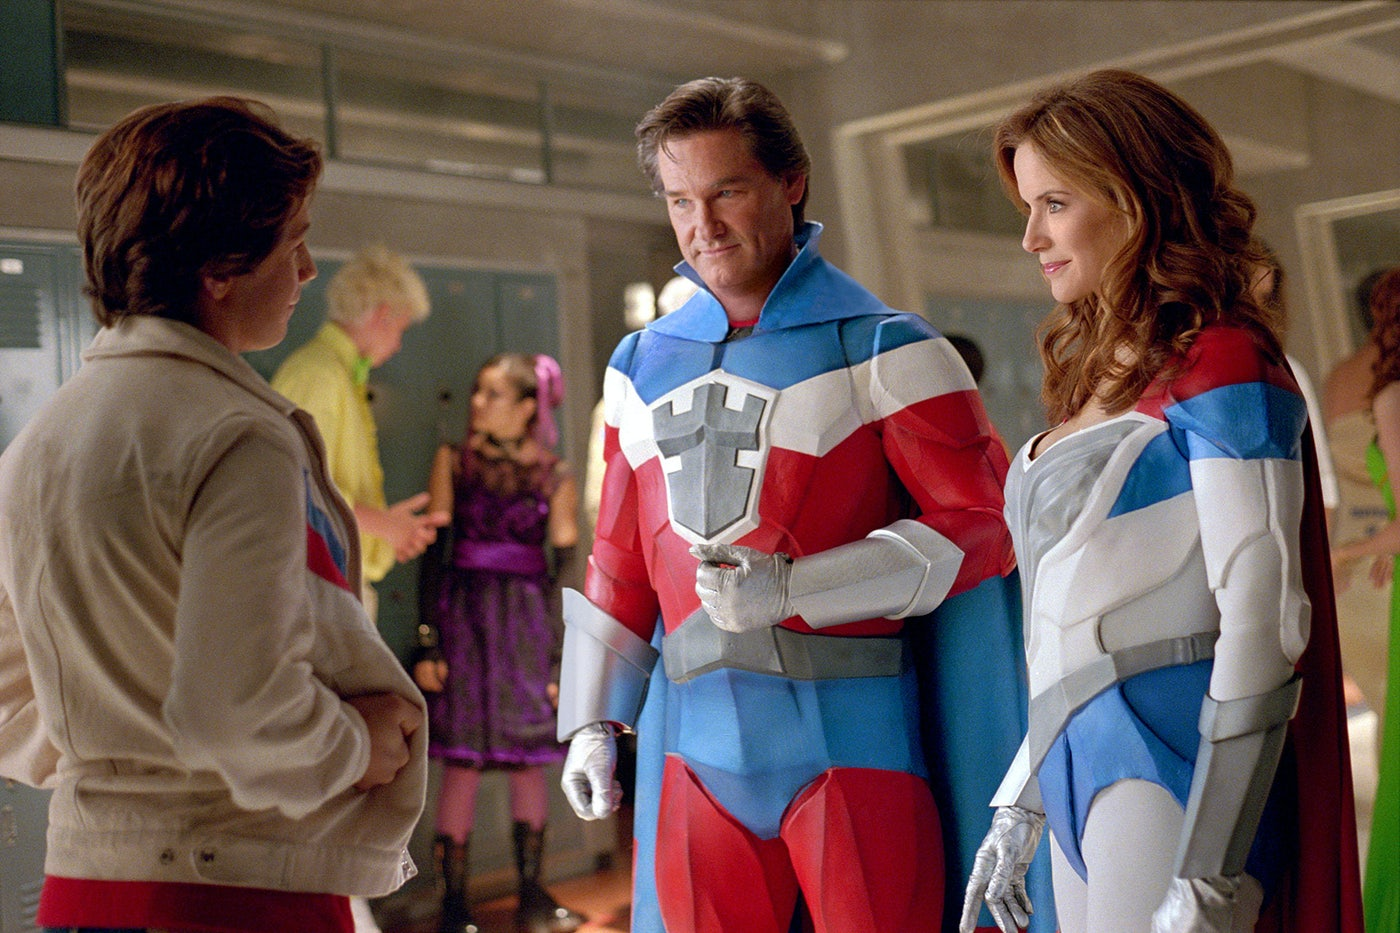 Sky High 2: Will We Get A Sequel Of Superhero Comedy Movie